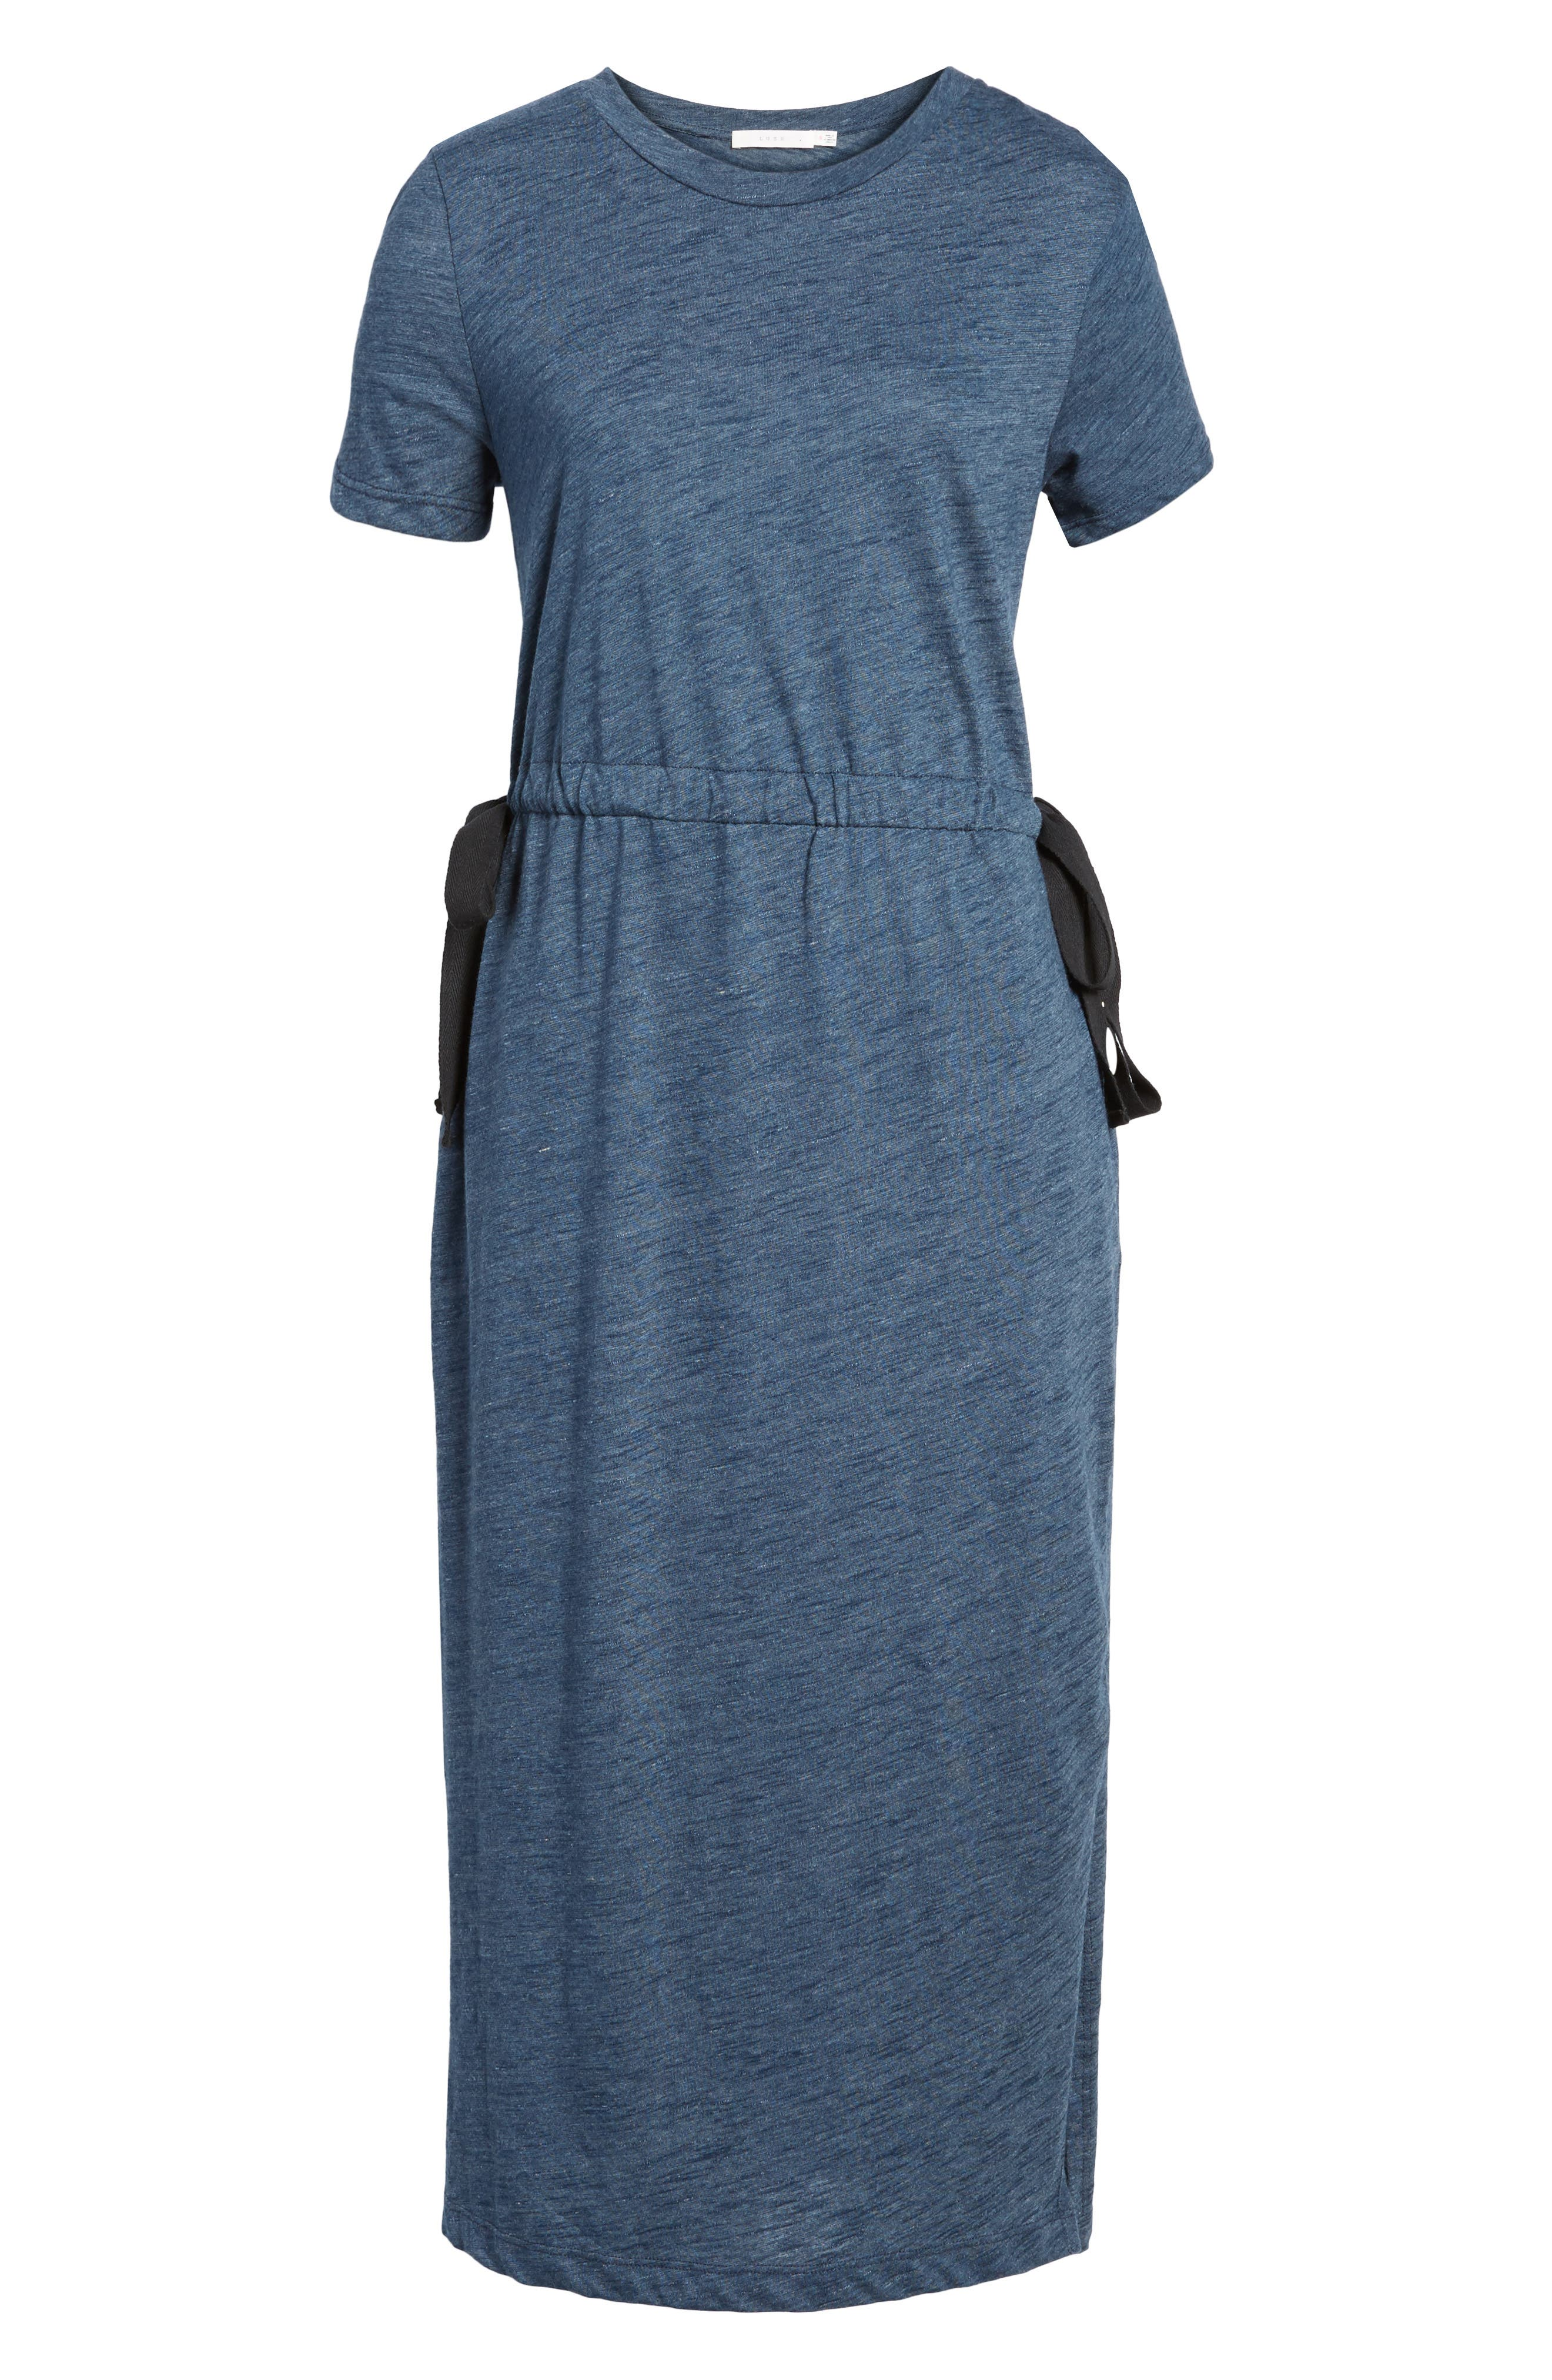 Side Tie Midi T-Shirt Dress,                             Alternate thumbnail 6, color,                             Navy Heather